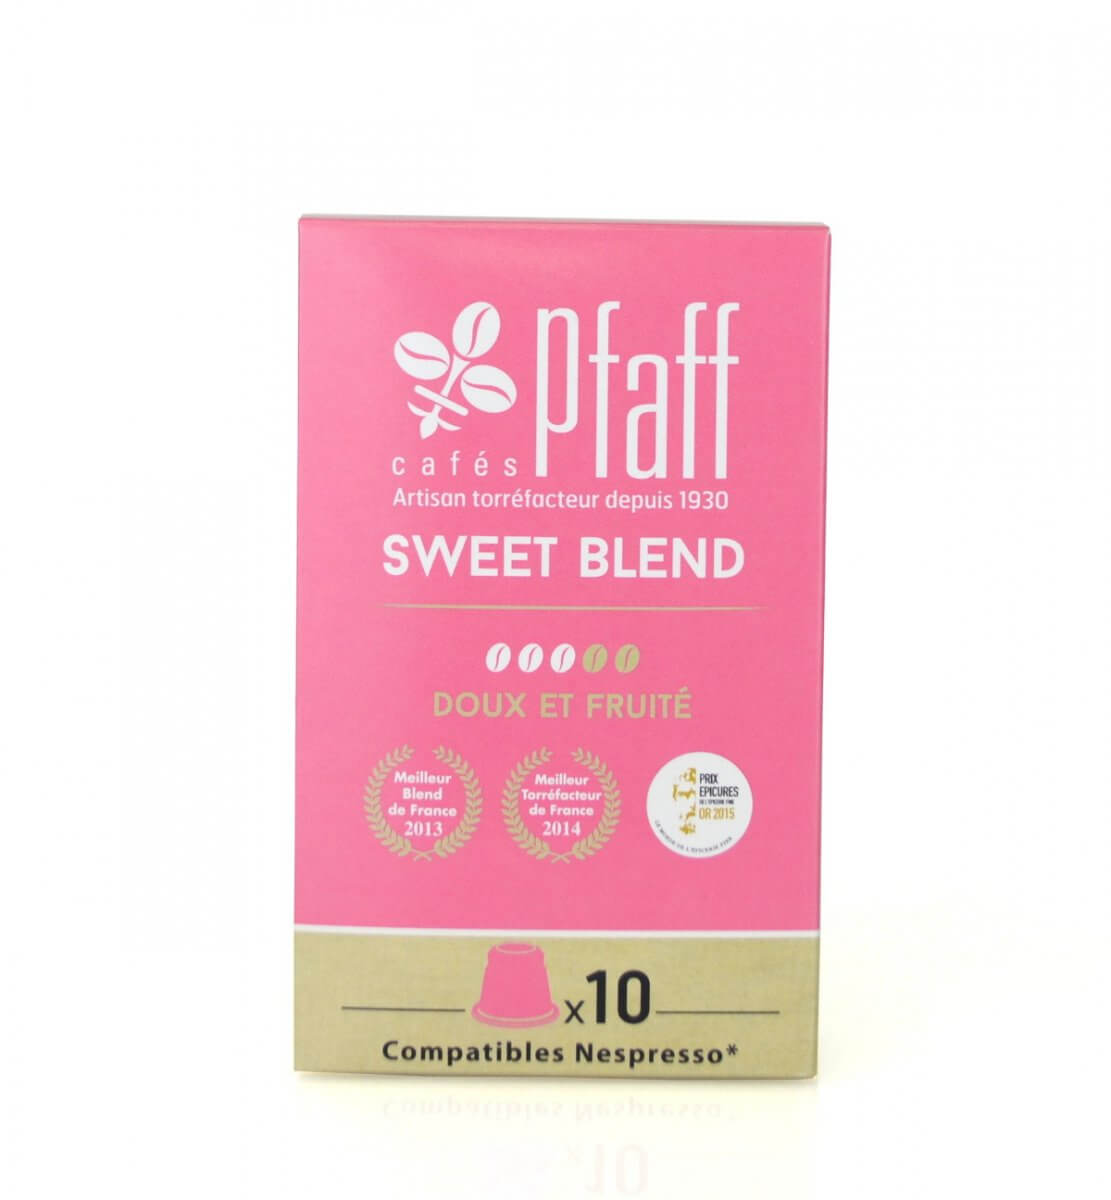 sweetblend capsules compatibles nespresso cafes pfaff